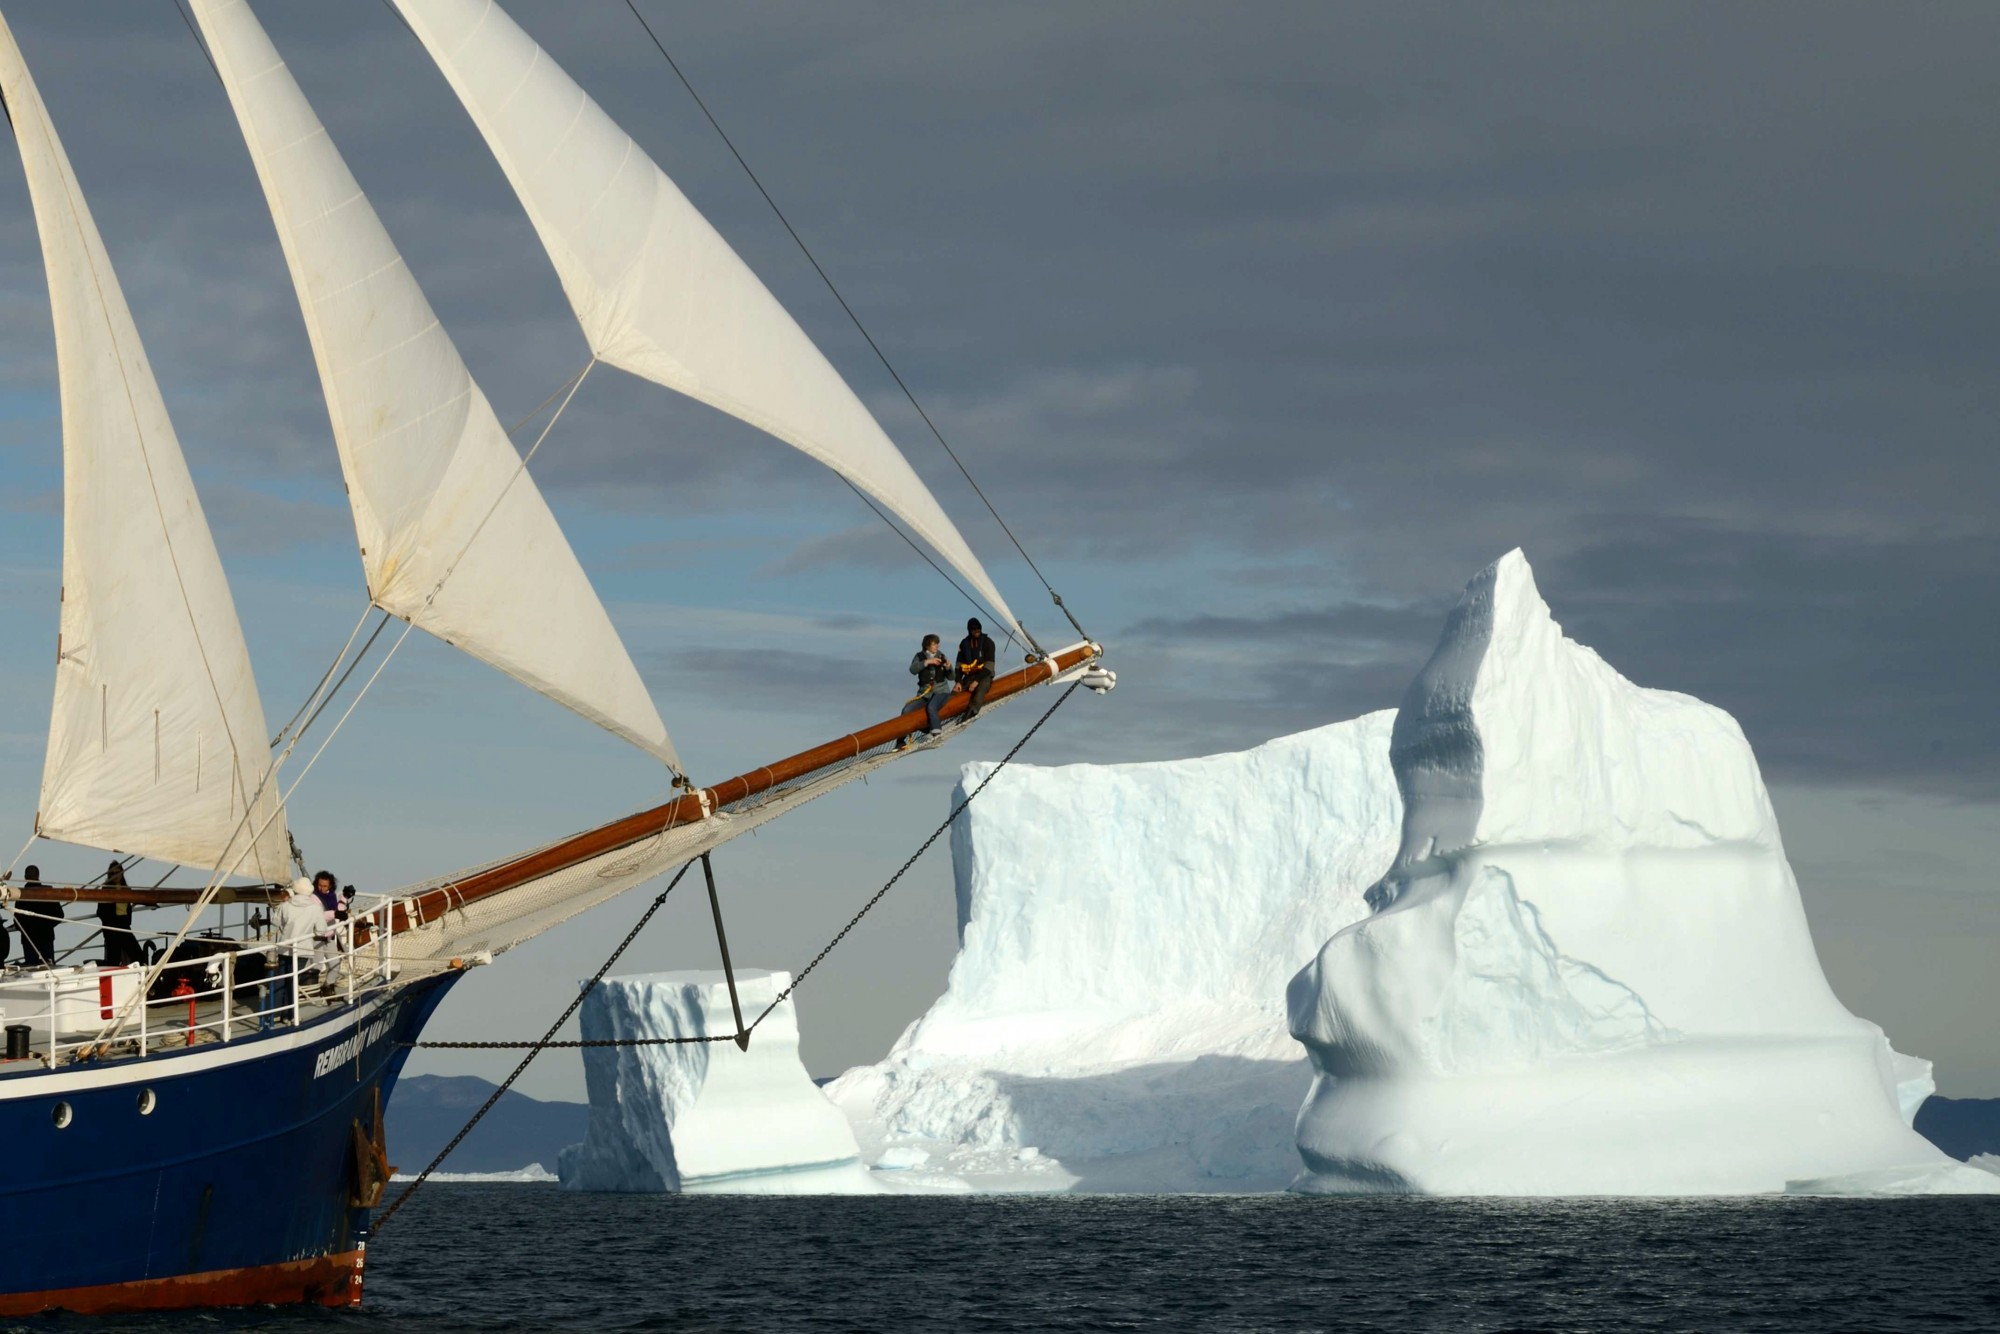 rvr_under_sail_greenland_3_-c-tarik_chekchak-oceanwide_expeditions.jpg